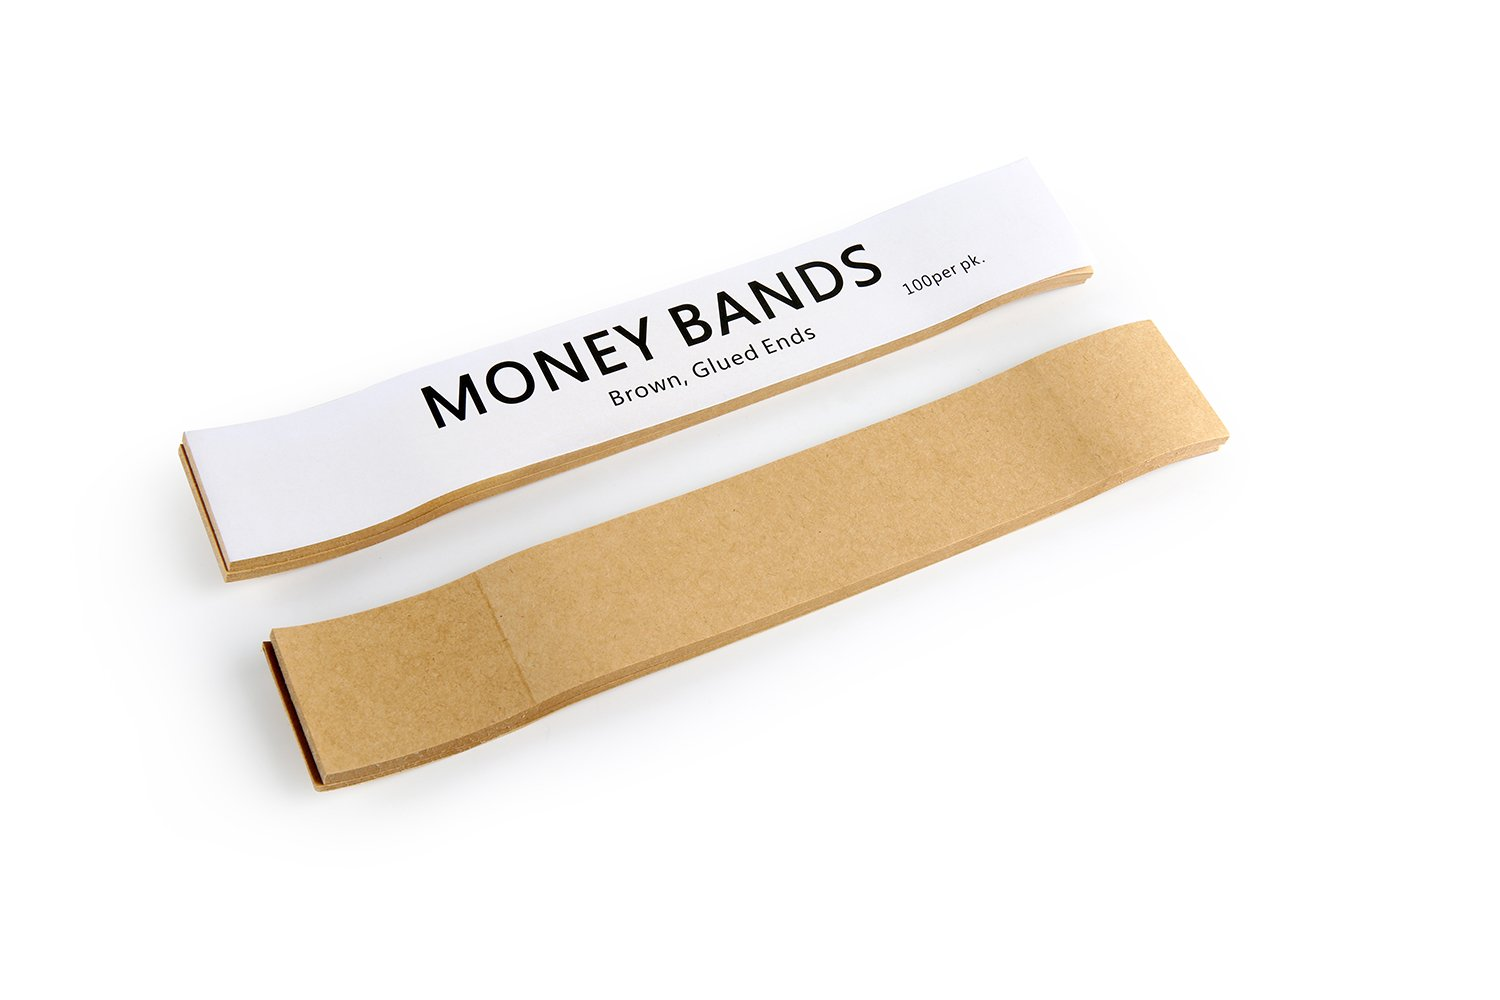 Natural Kraft Brown No Denomination Currency Band Bundles (100 Bands) Liked Develop